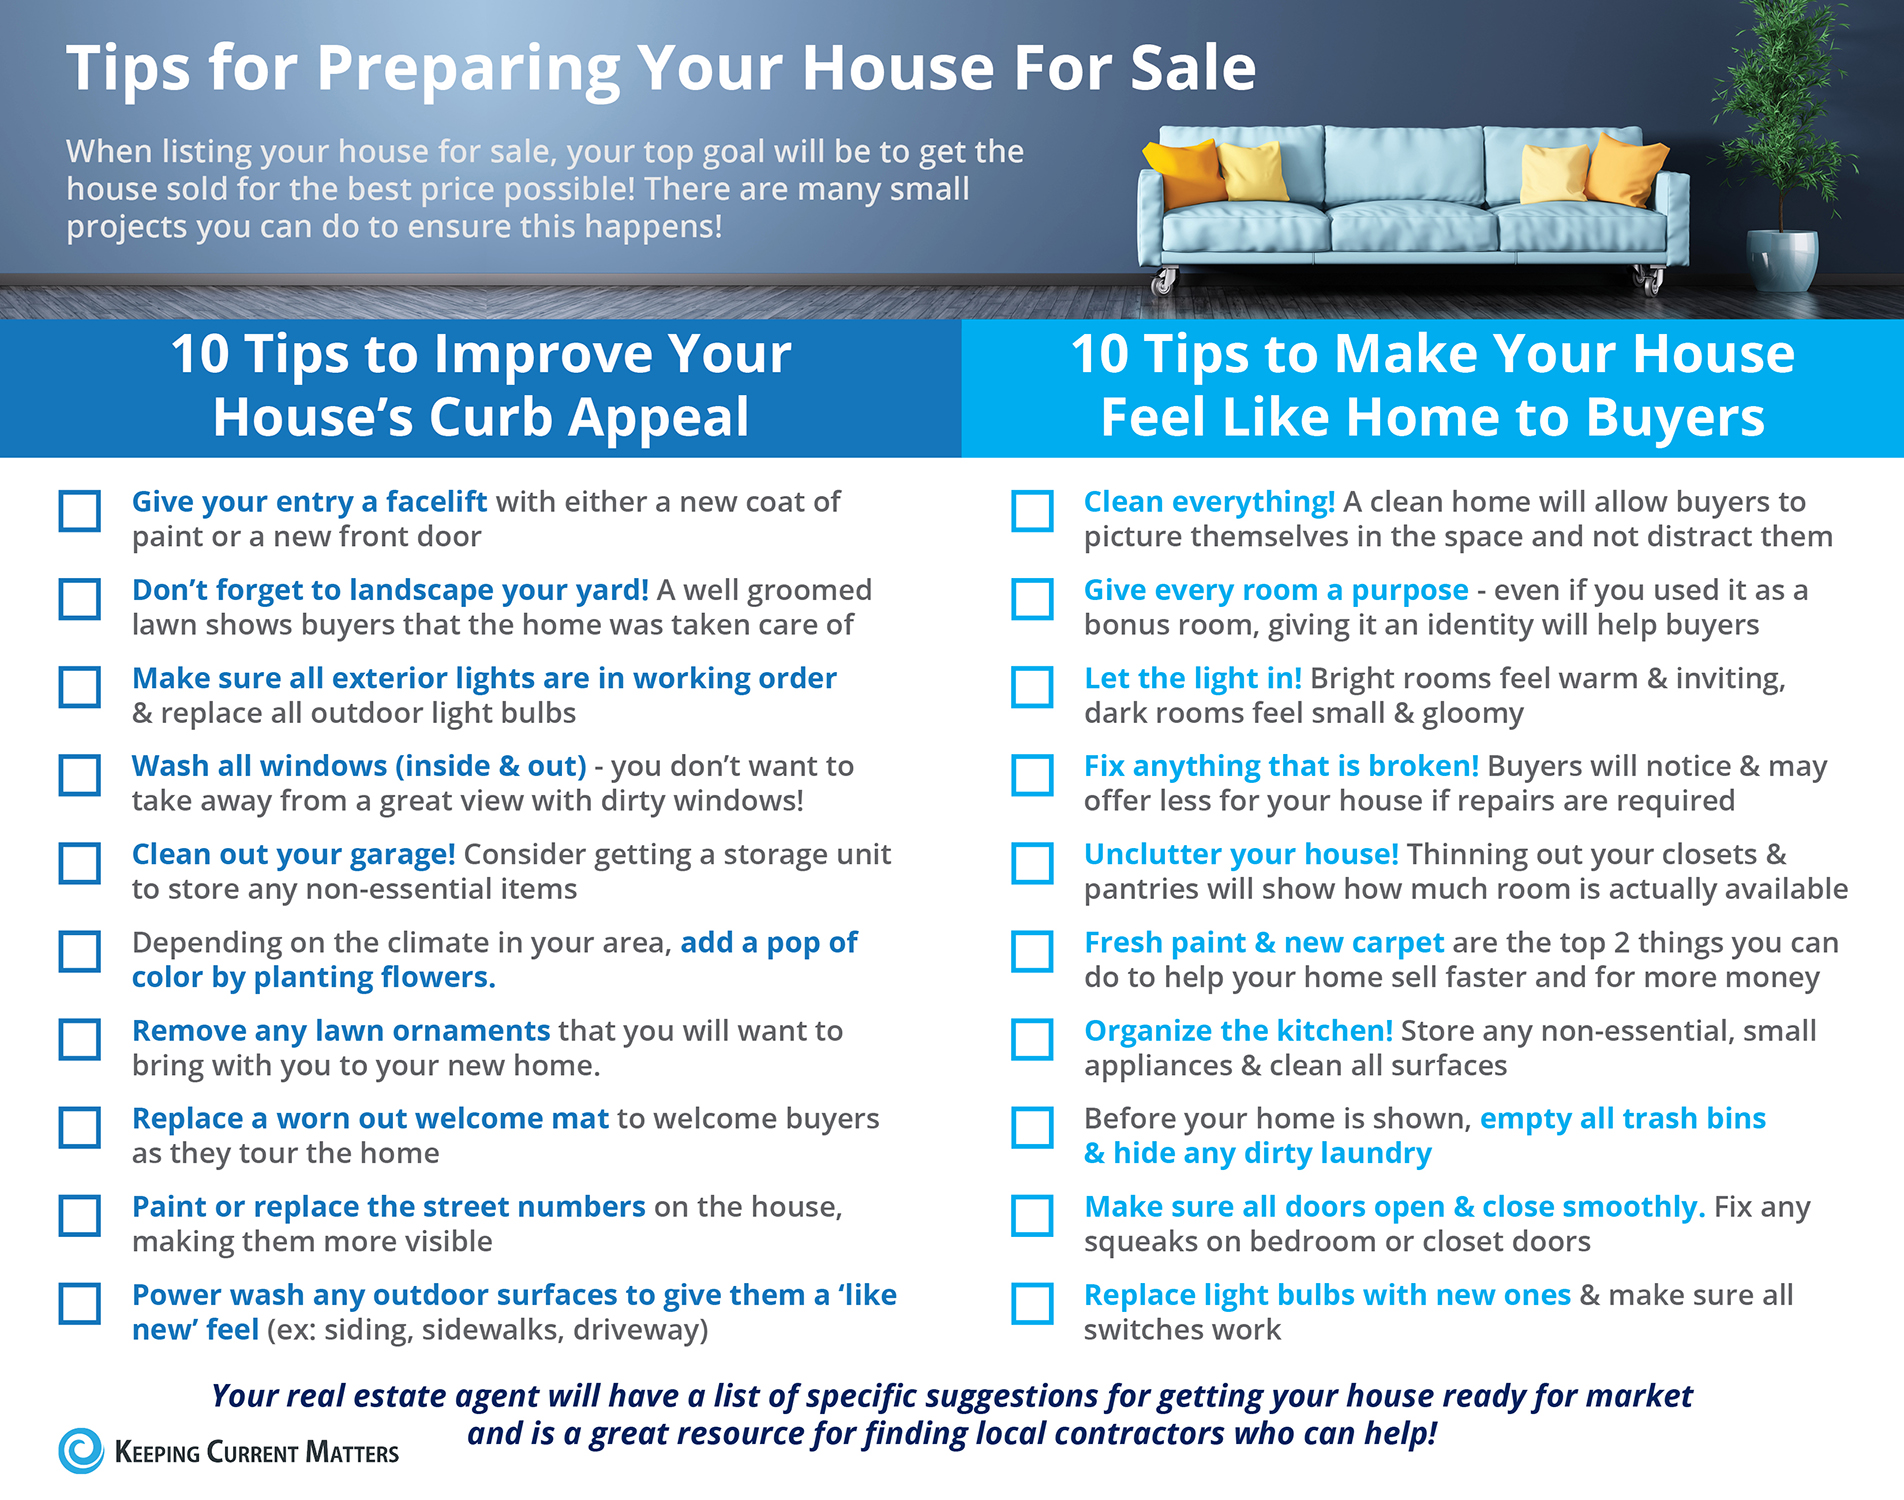 ztips for Preparing your home for sale